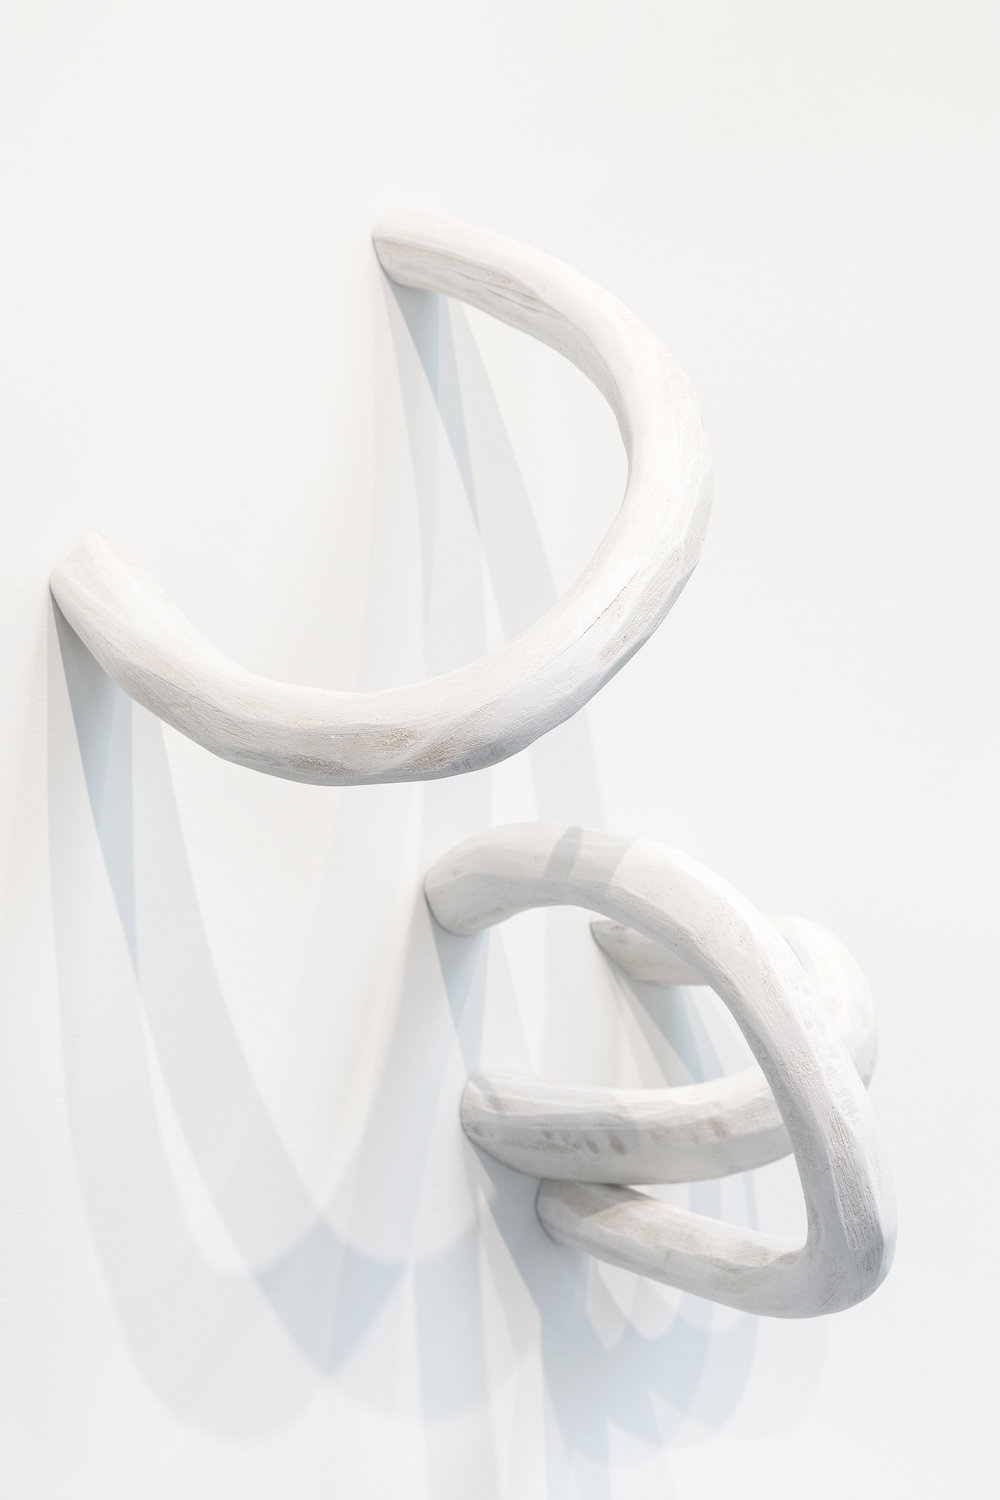 white loops, wood, acrylic, 2017 - variable dimensions